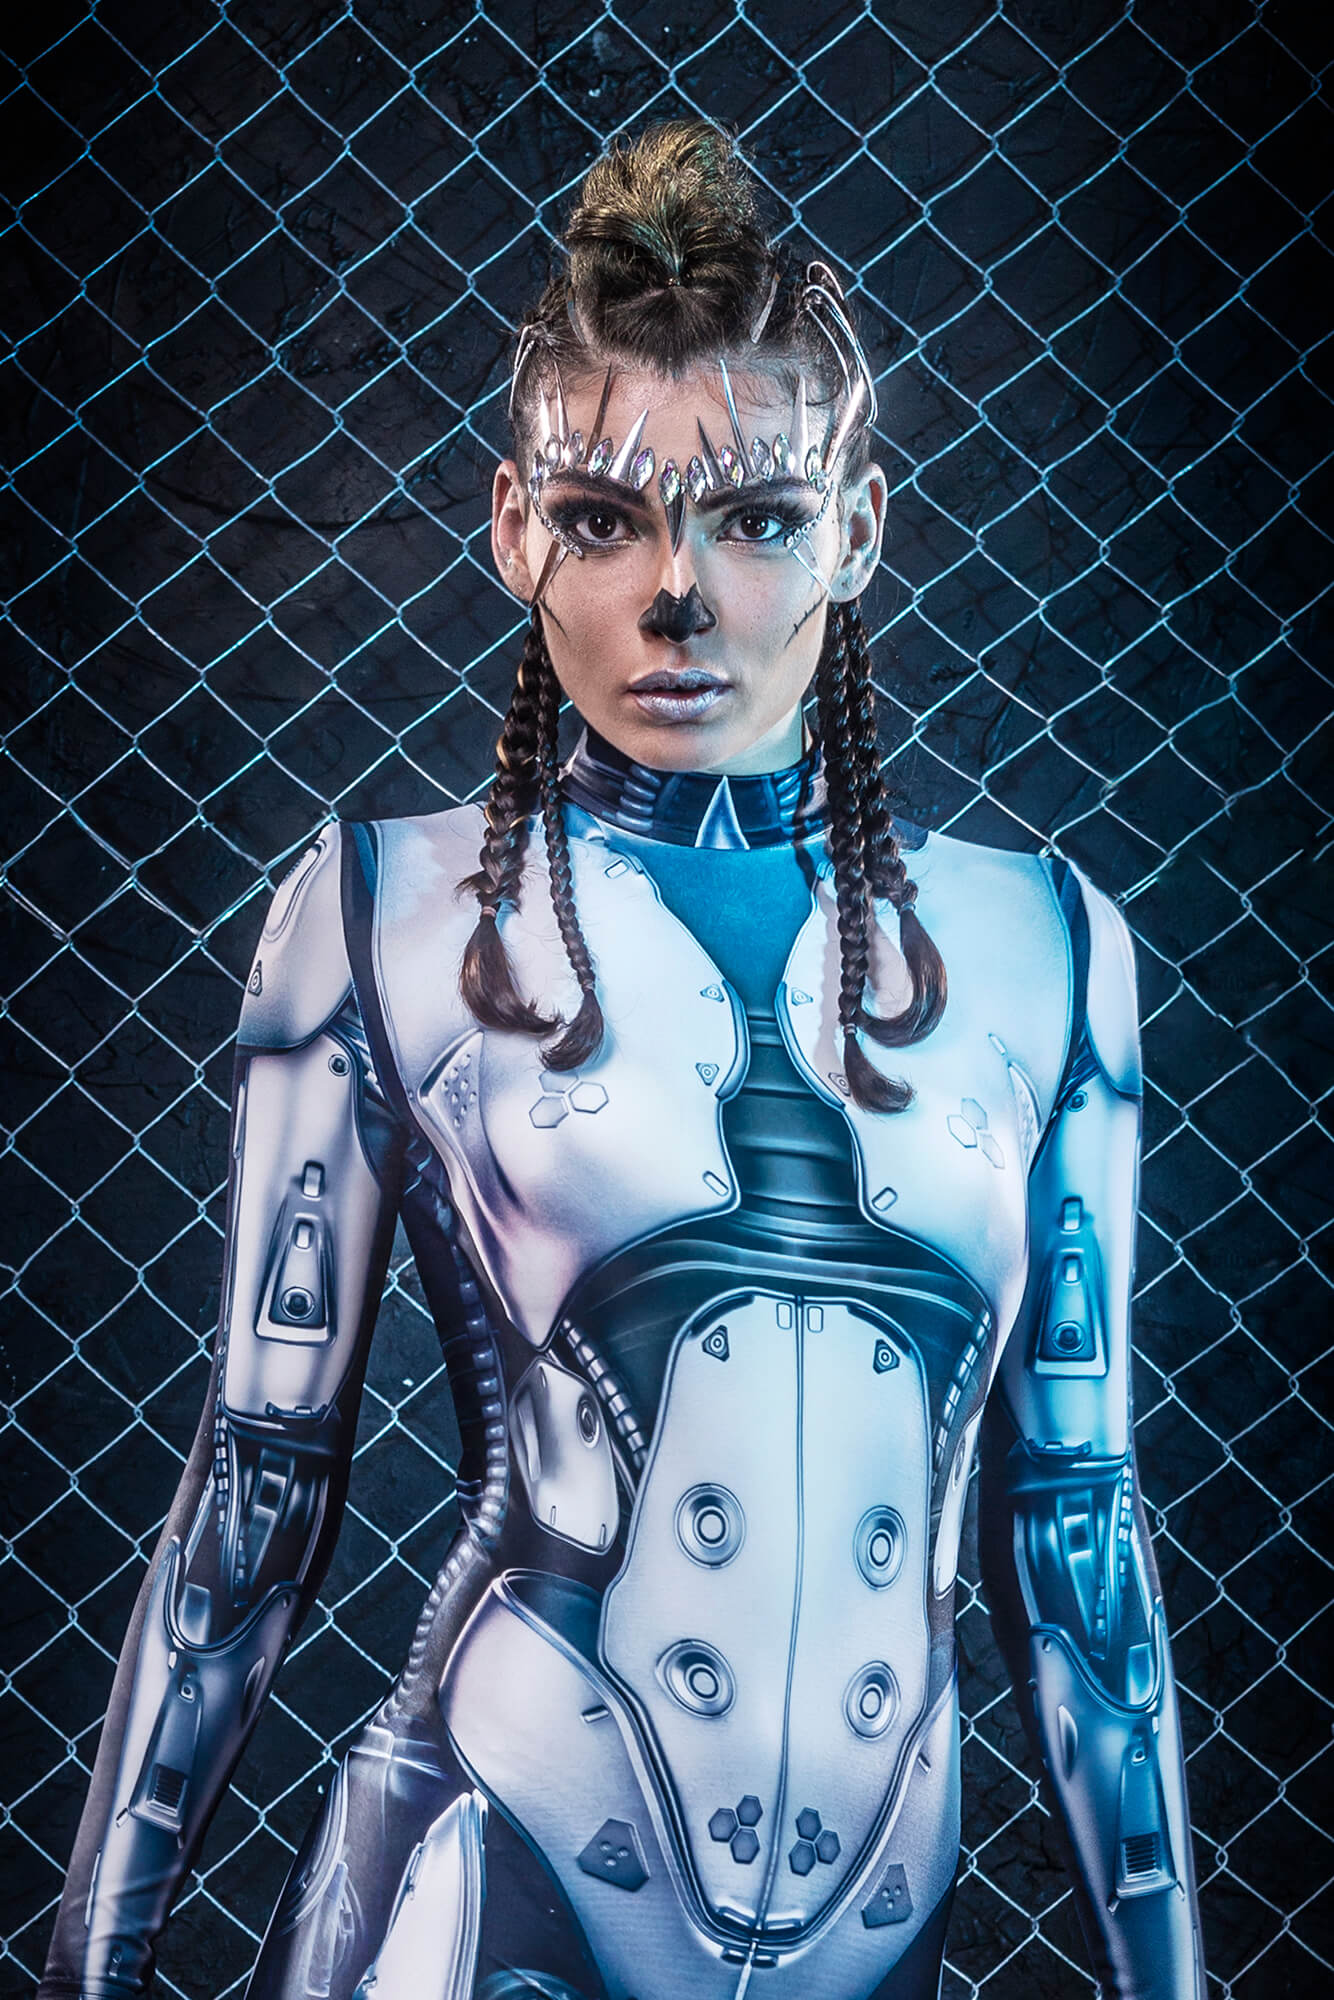 Halloween Costumes 2019 Adults - Cool Robot Costumes Womens - Sexy Halloween Bodysuit Woman